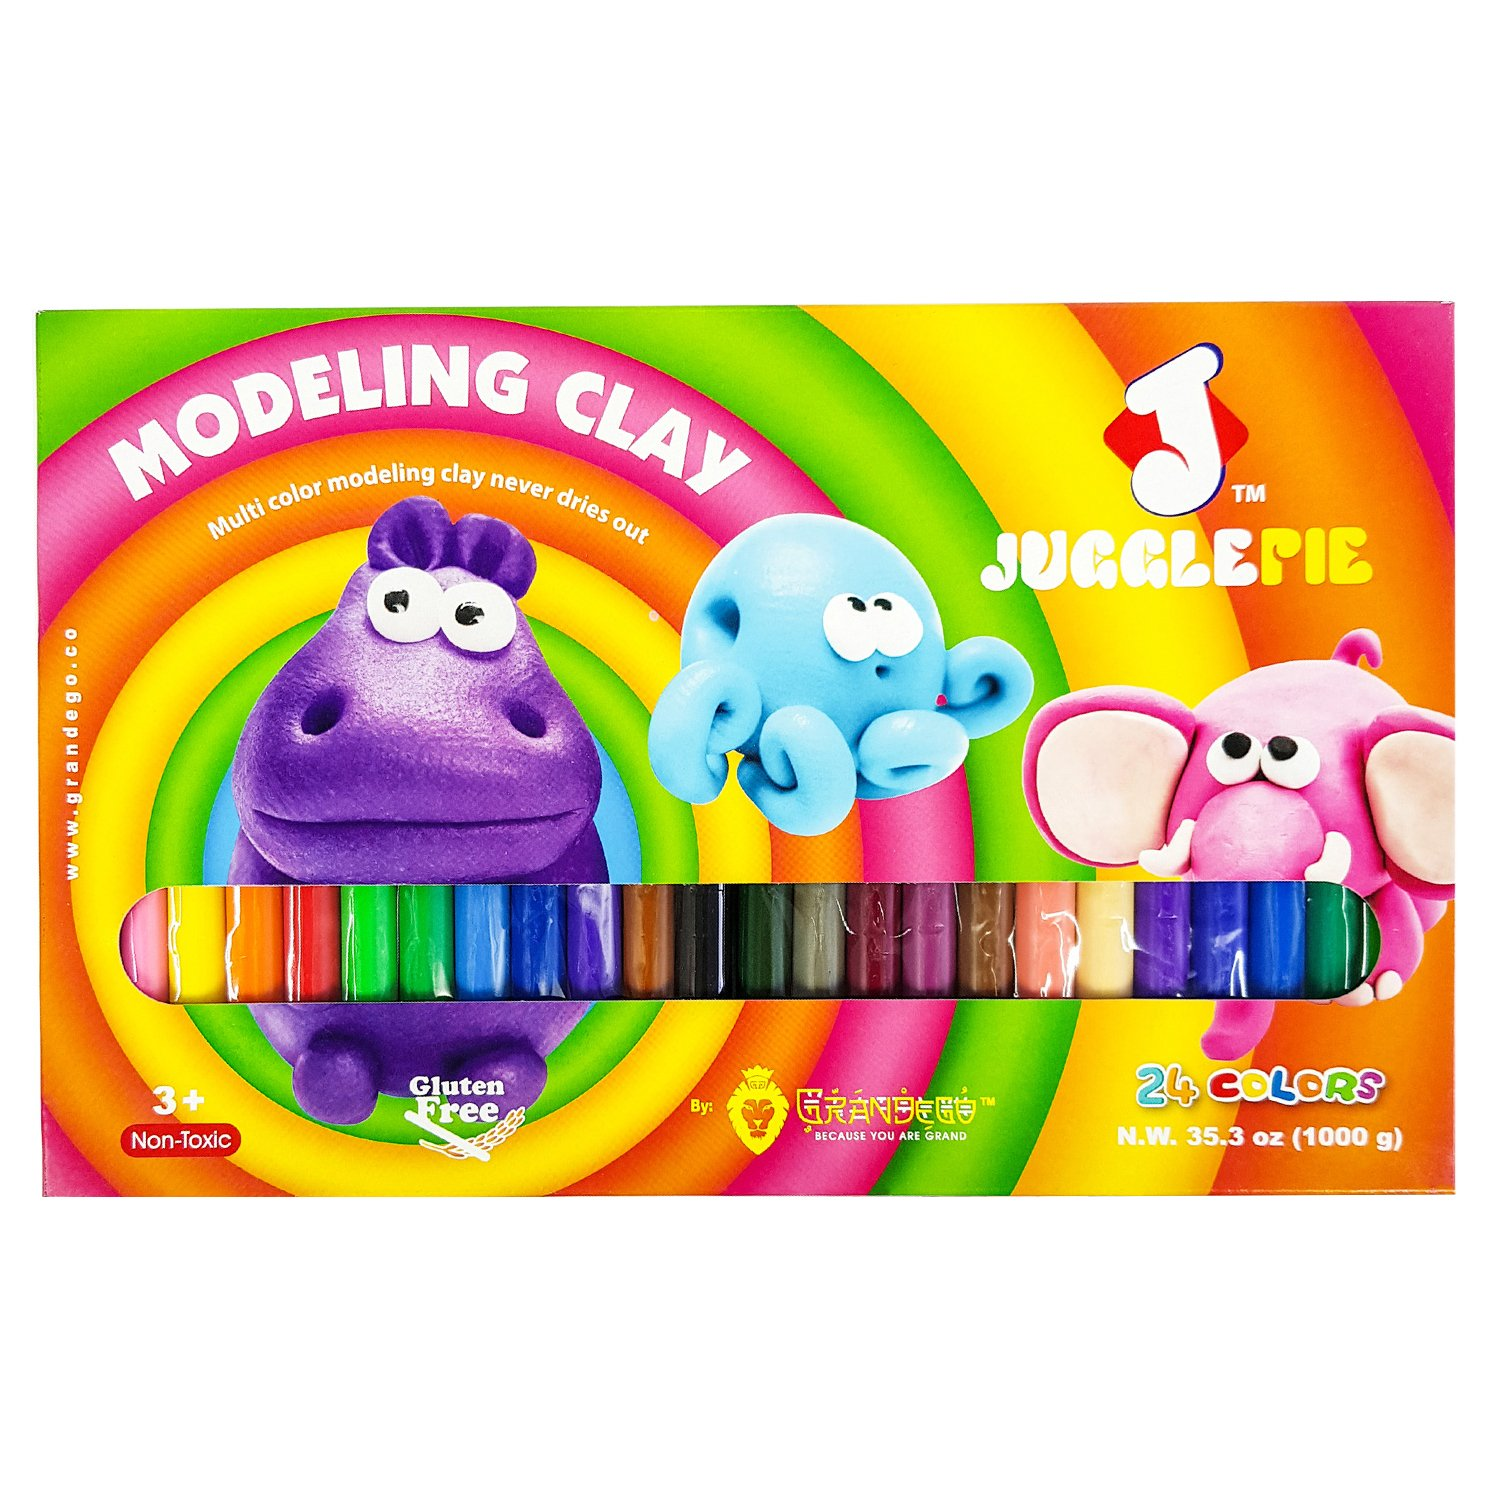 JUGGLEPIE Colorful Modeling Clay for Kids | Bulk of 2.2 Pound - Art Toys for Creative Children, Soft and Easy to Mold, Non-Hardening, Non-Toxic and Never Dries Out – 24 Color Sticks